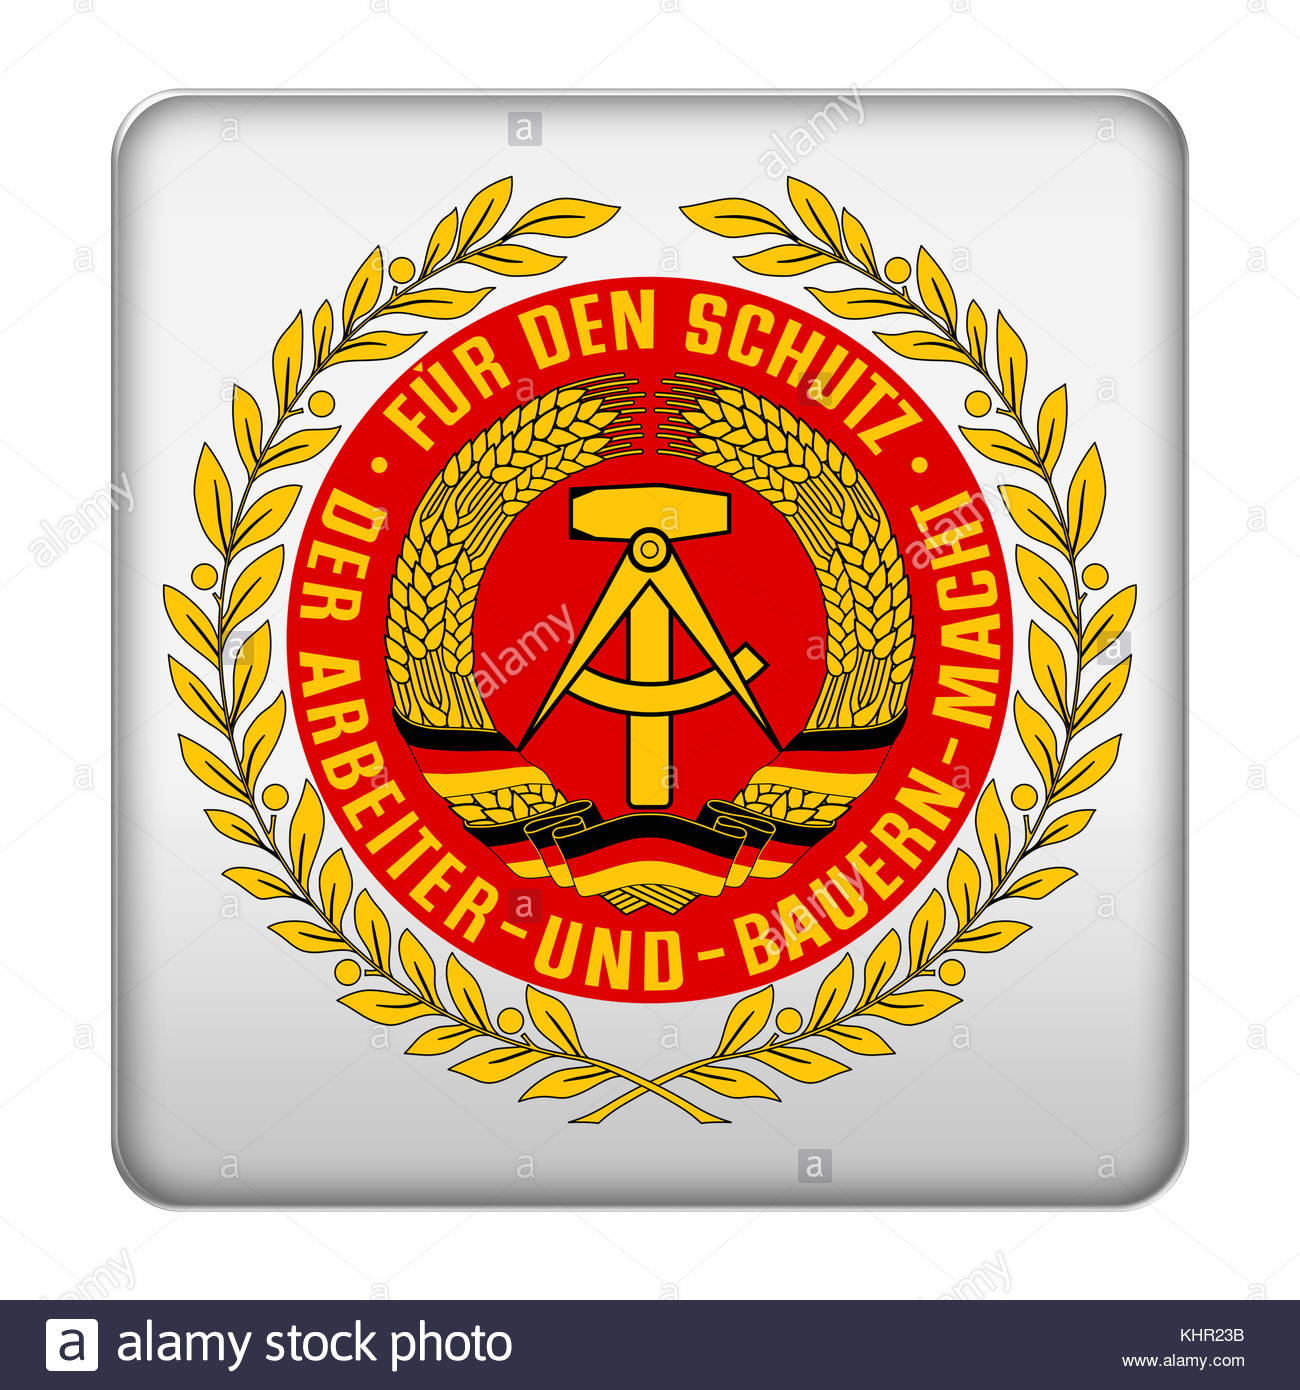 National People's Army icon logo - Stock Image